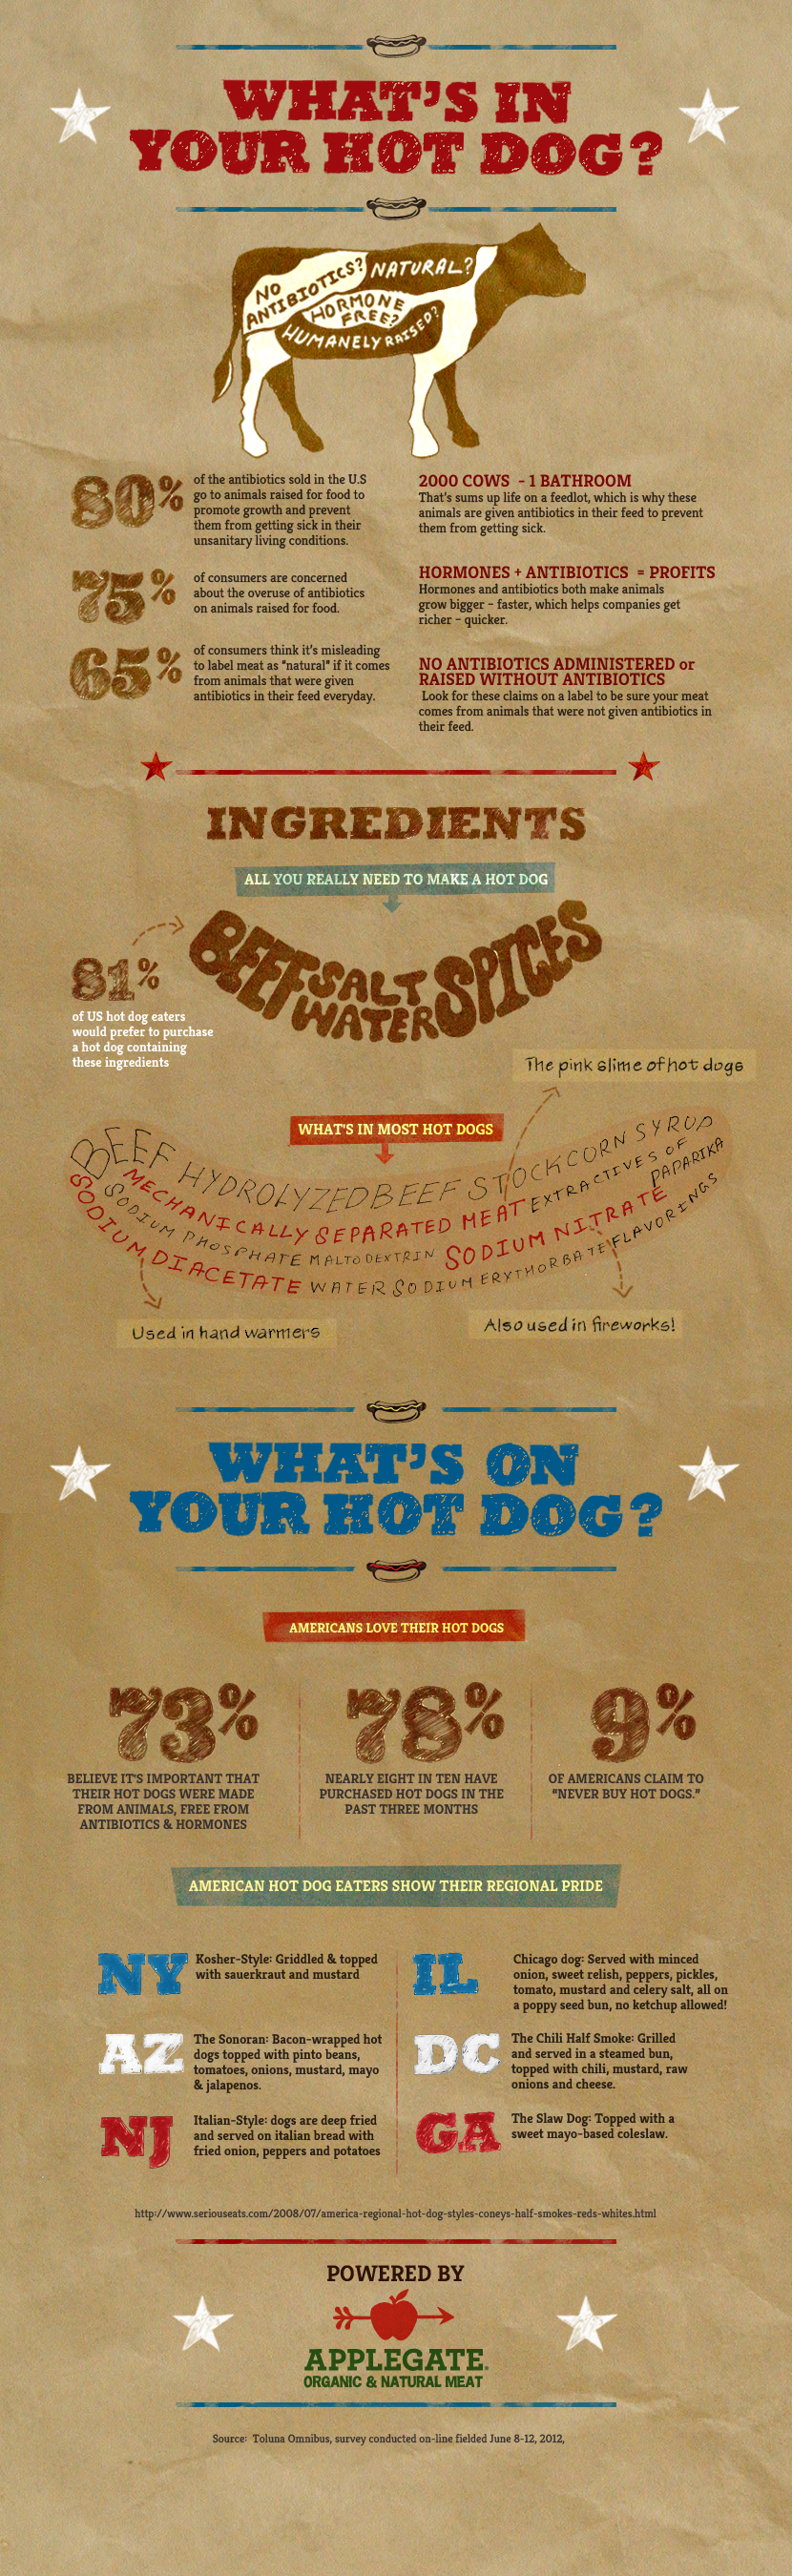 What's in Your Hot Dog?